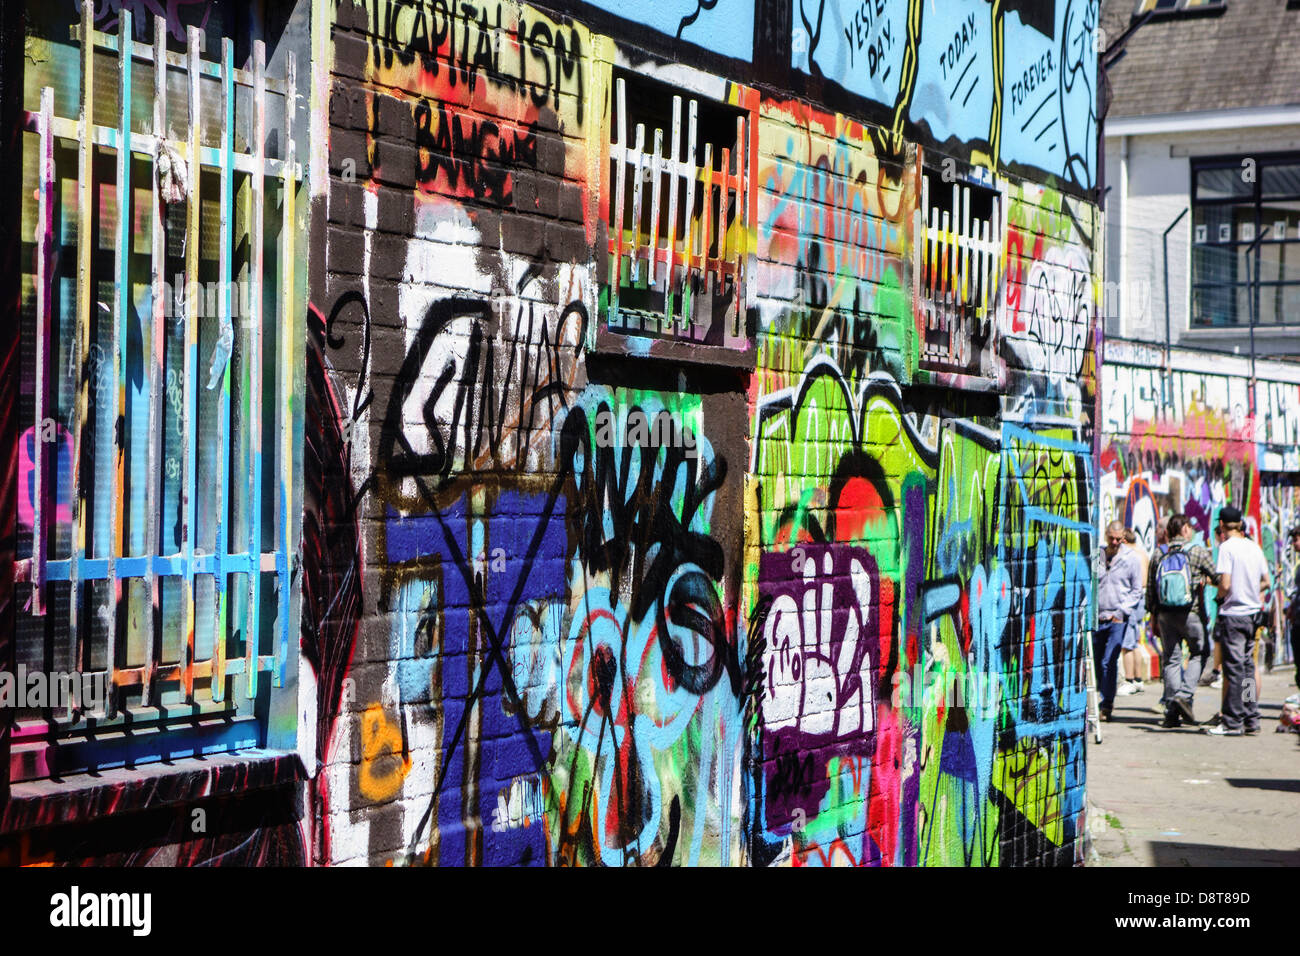 Youngsters in alley spraying colourful graffiti on wall of building in city Stock Photo